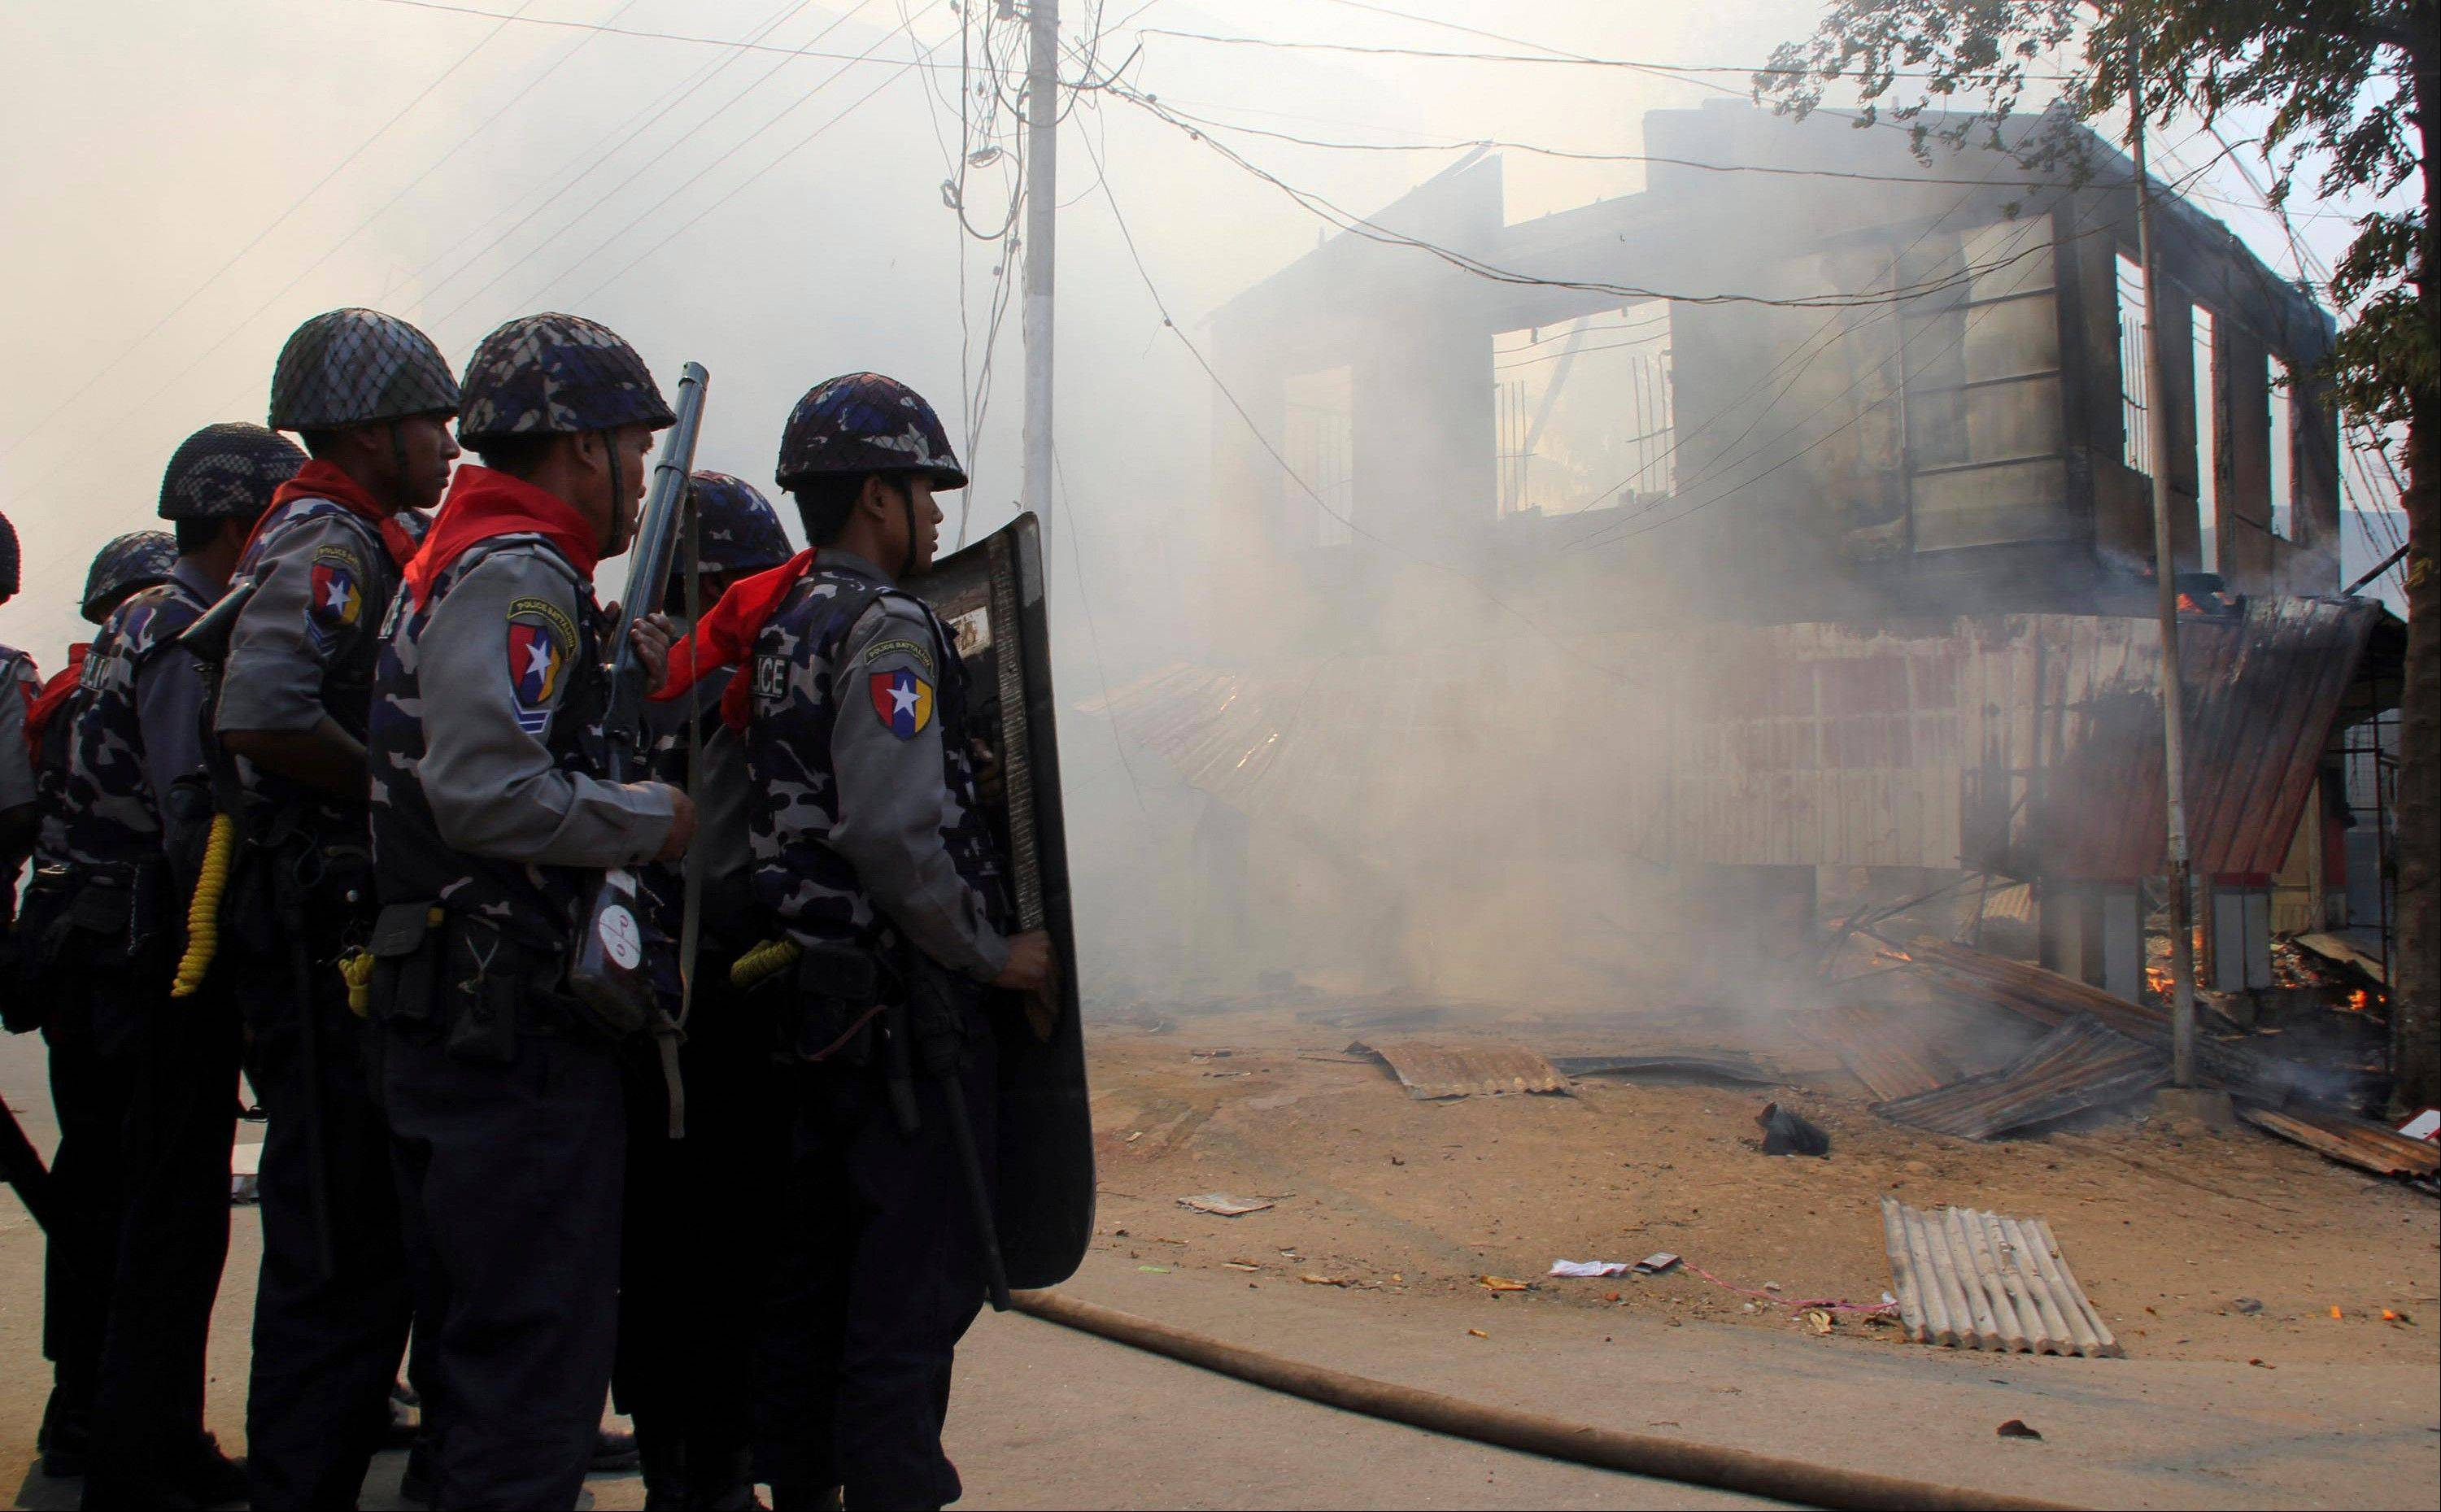 Armed Myanmar police oficers provide security Thursday around a smoldering building following ethnic unrest between Buddhists and Muslims in Meikhtila, Myanmar.